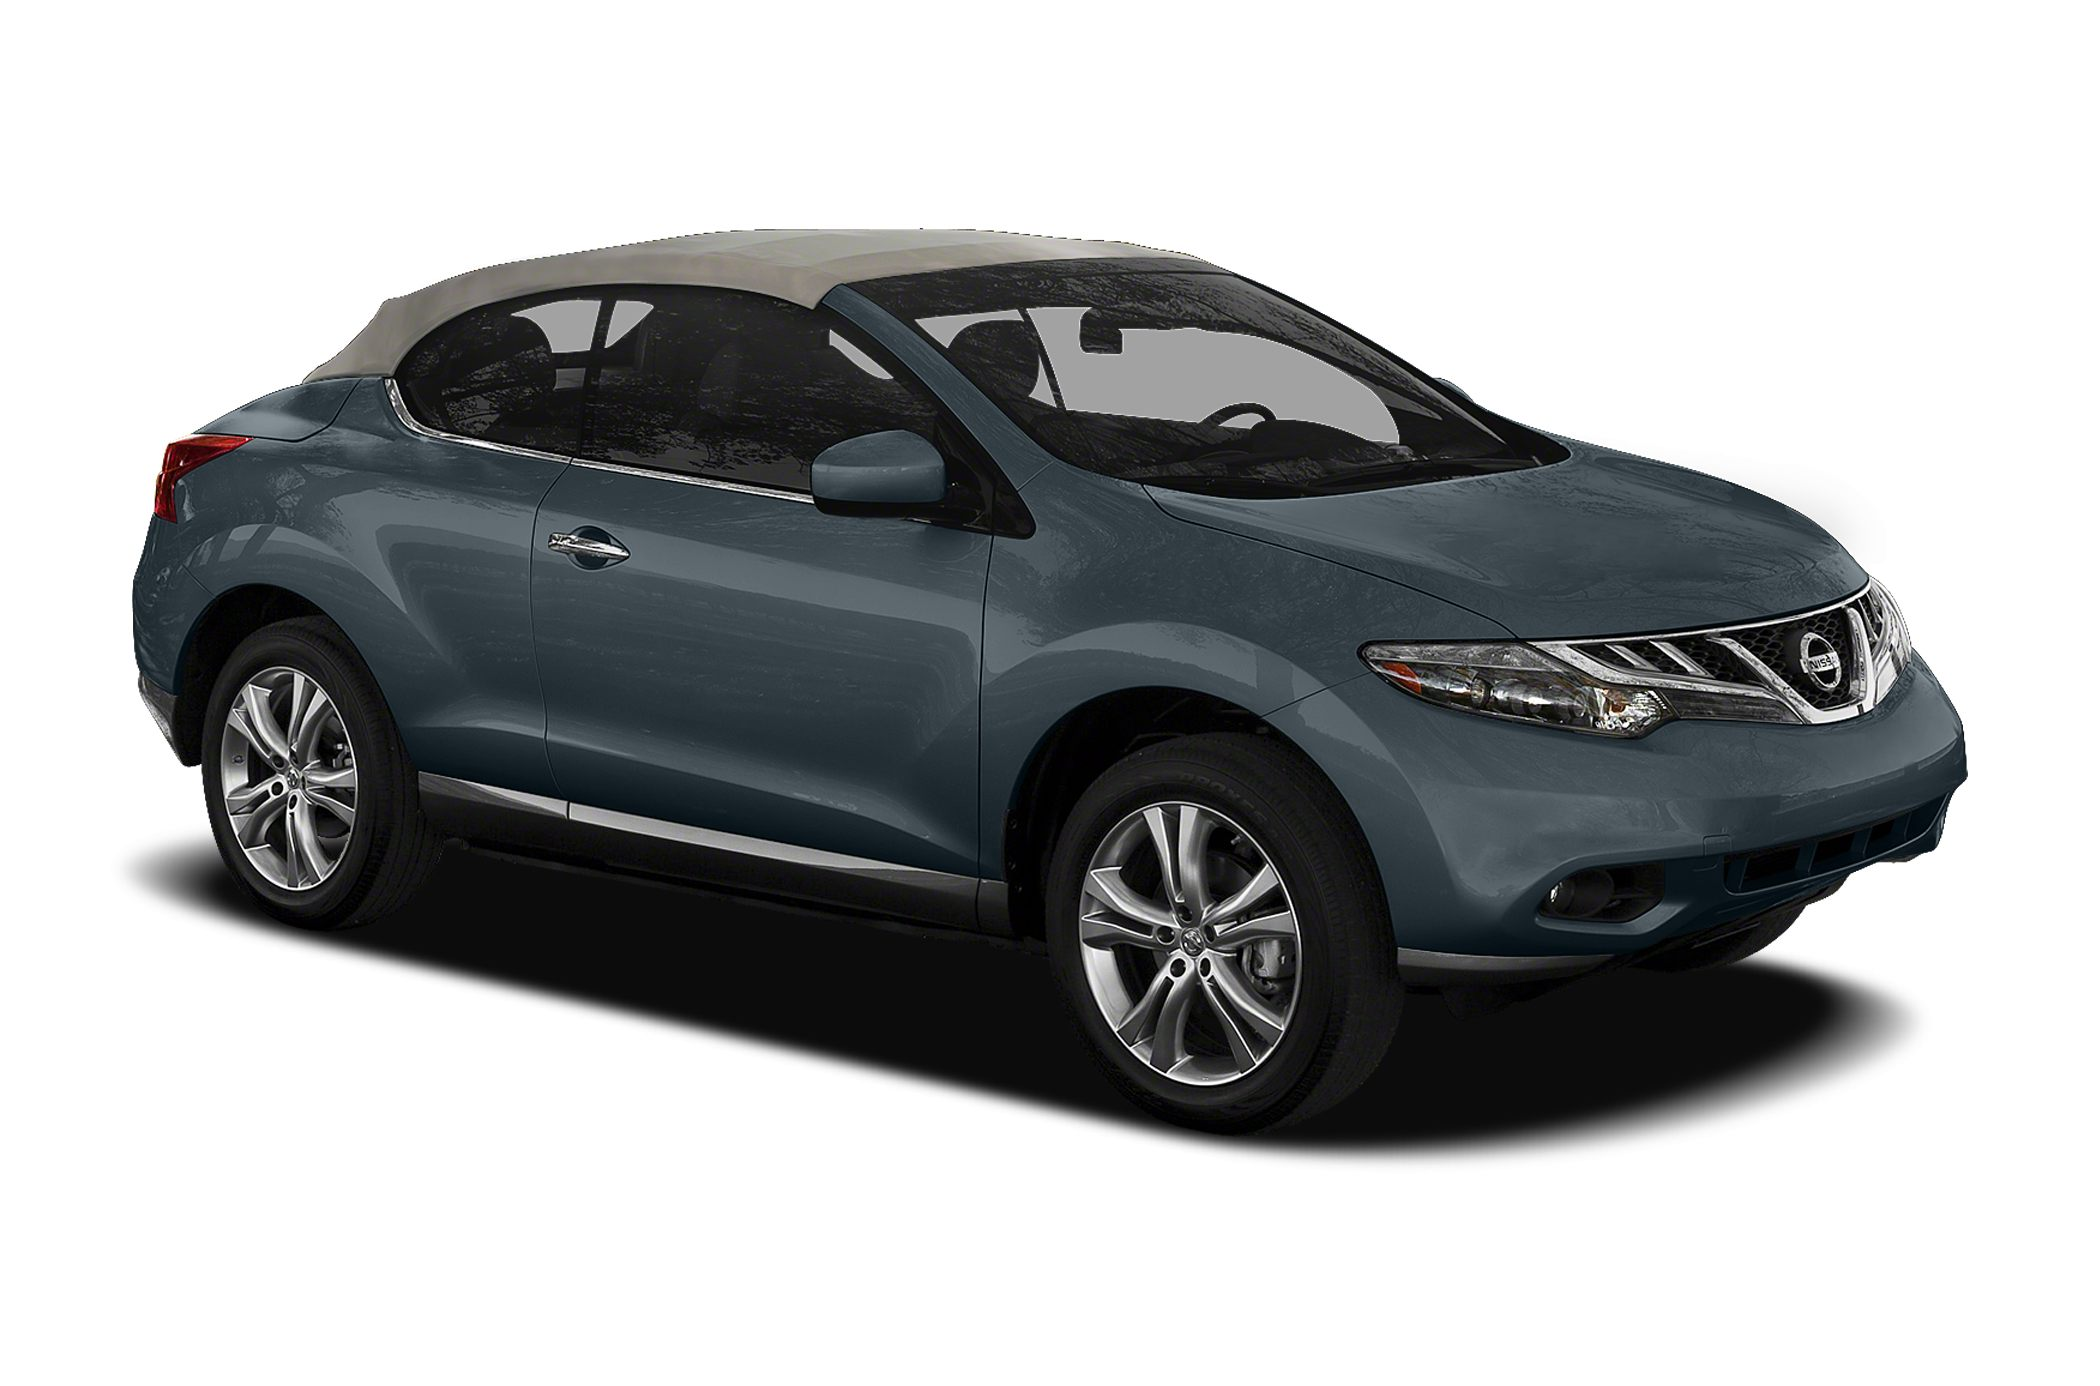 2011 Nissan Murano CrossCabriolet Base Convertible for sale in Sarasota for $24,591 with 13,308 miles